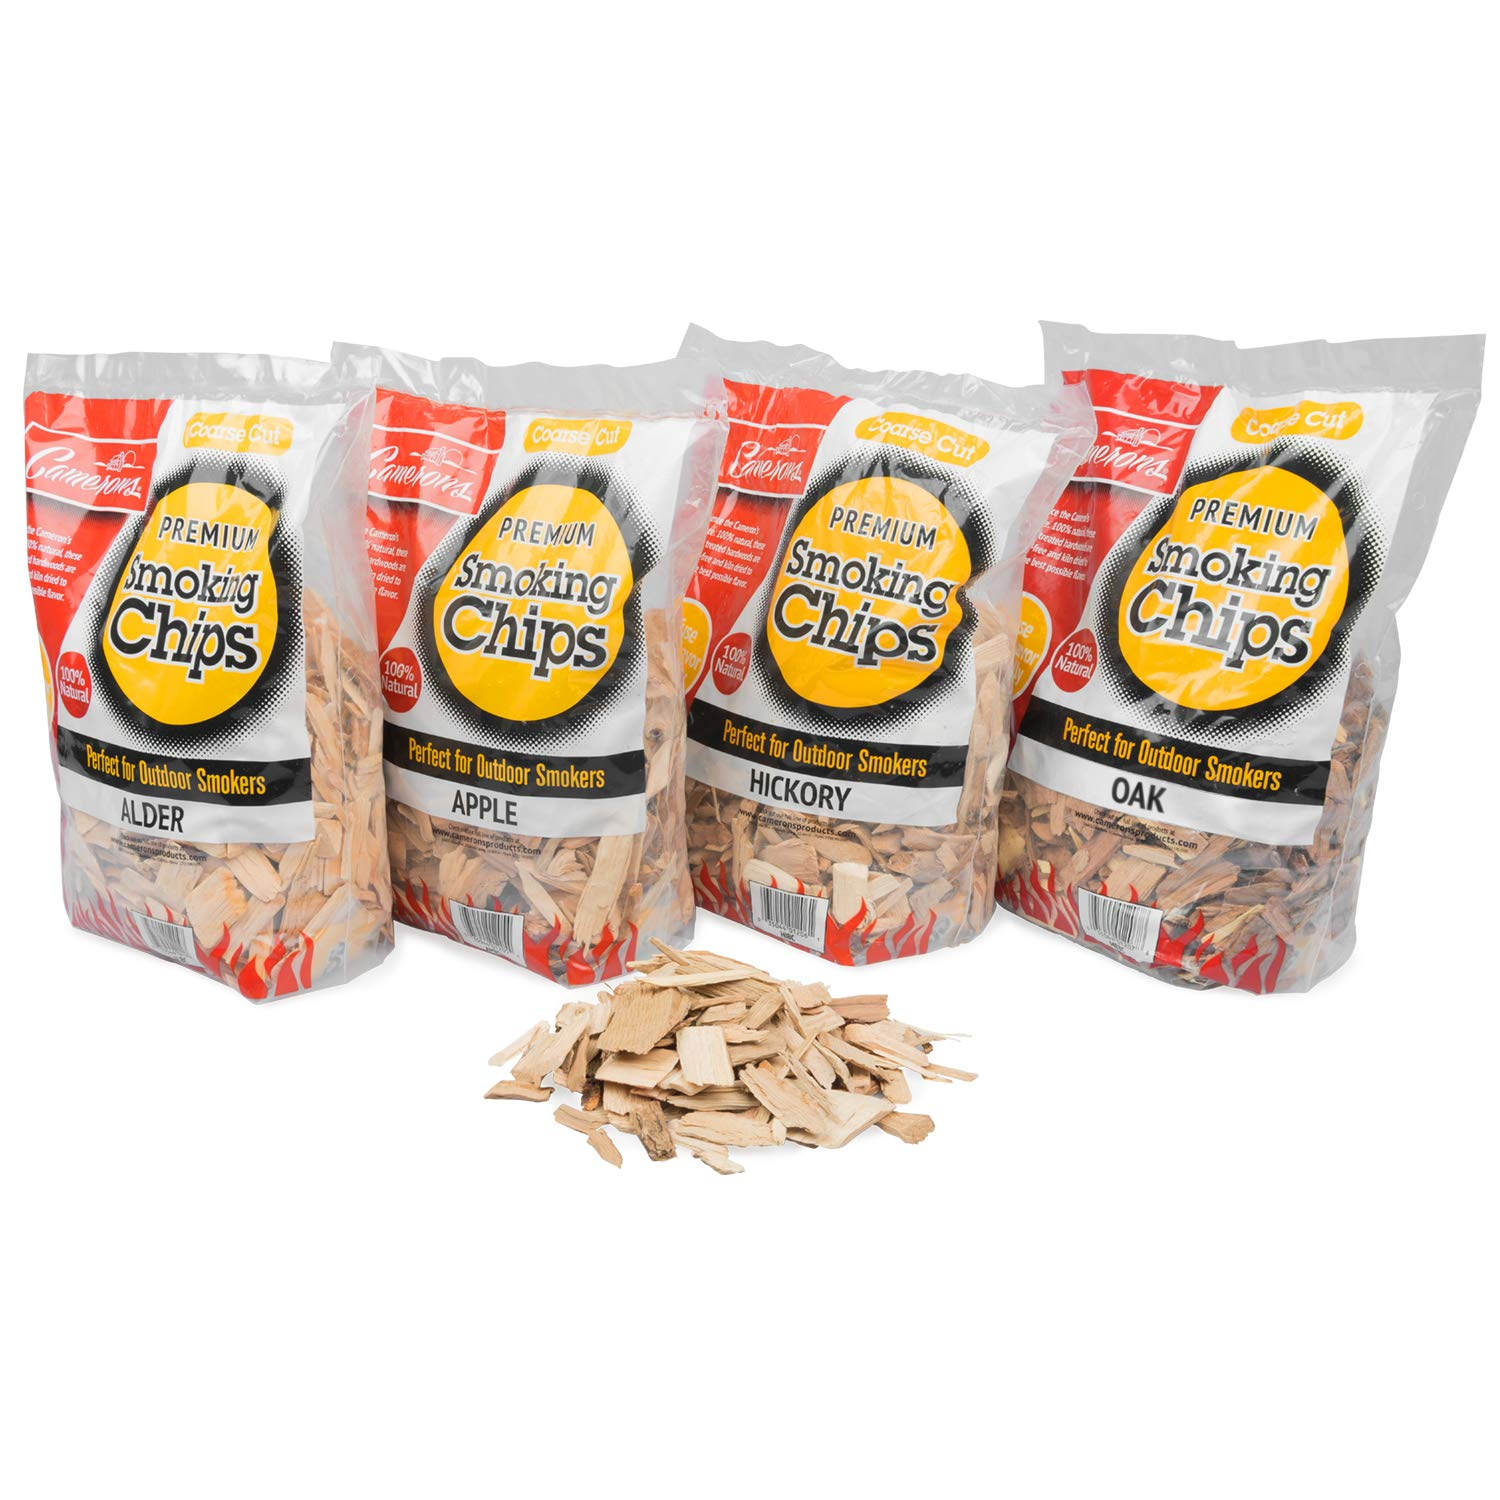 Smoking Wood Chips (Apple, Hickory, Oak, Alder)- 4 Pack Value Gift Set of Coarse Kiln Dried BBQ Chips- 100% All Natural Barbecue Smoker Shavings- 2lb Bag Variety Combo Set